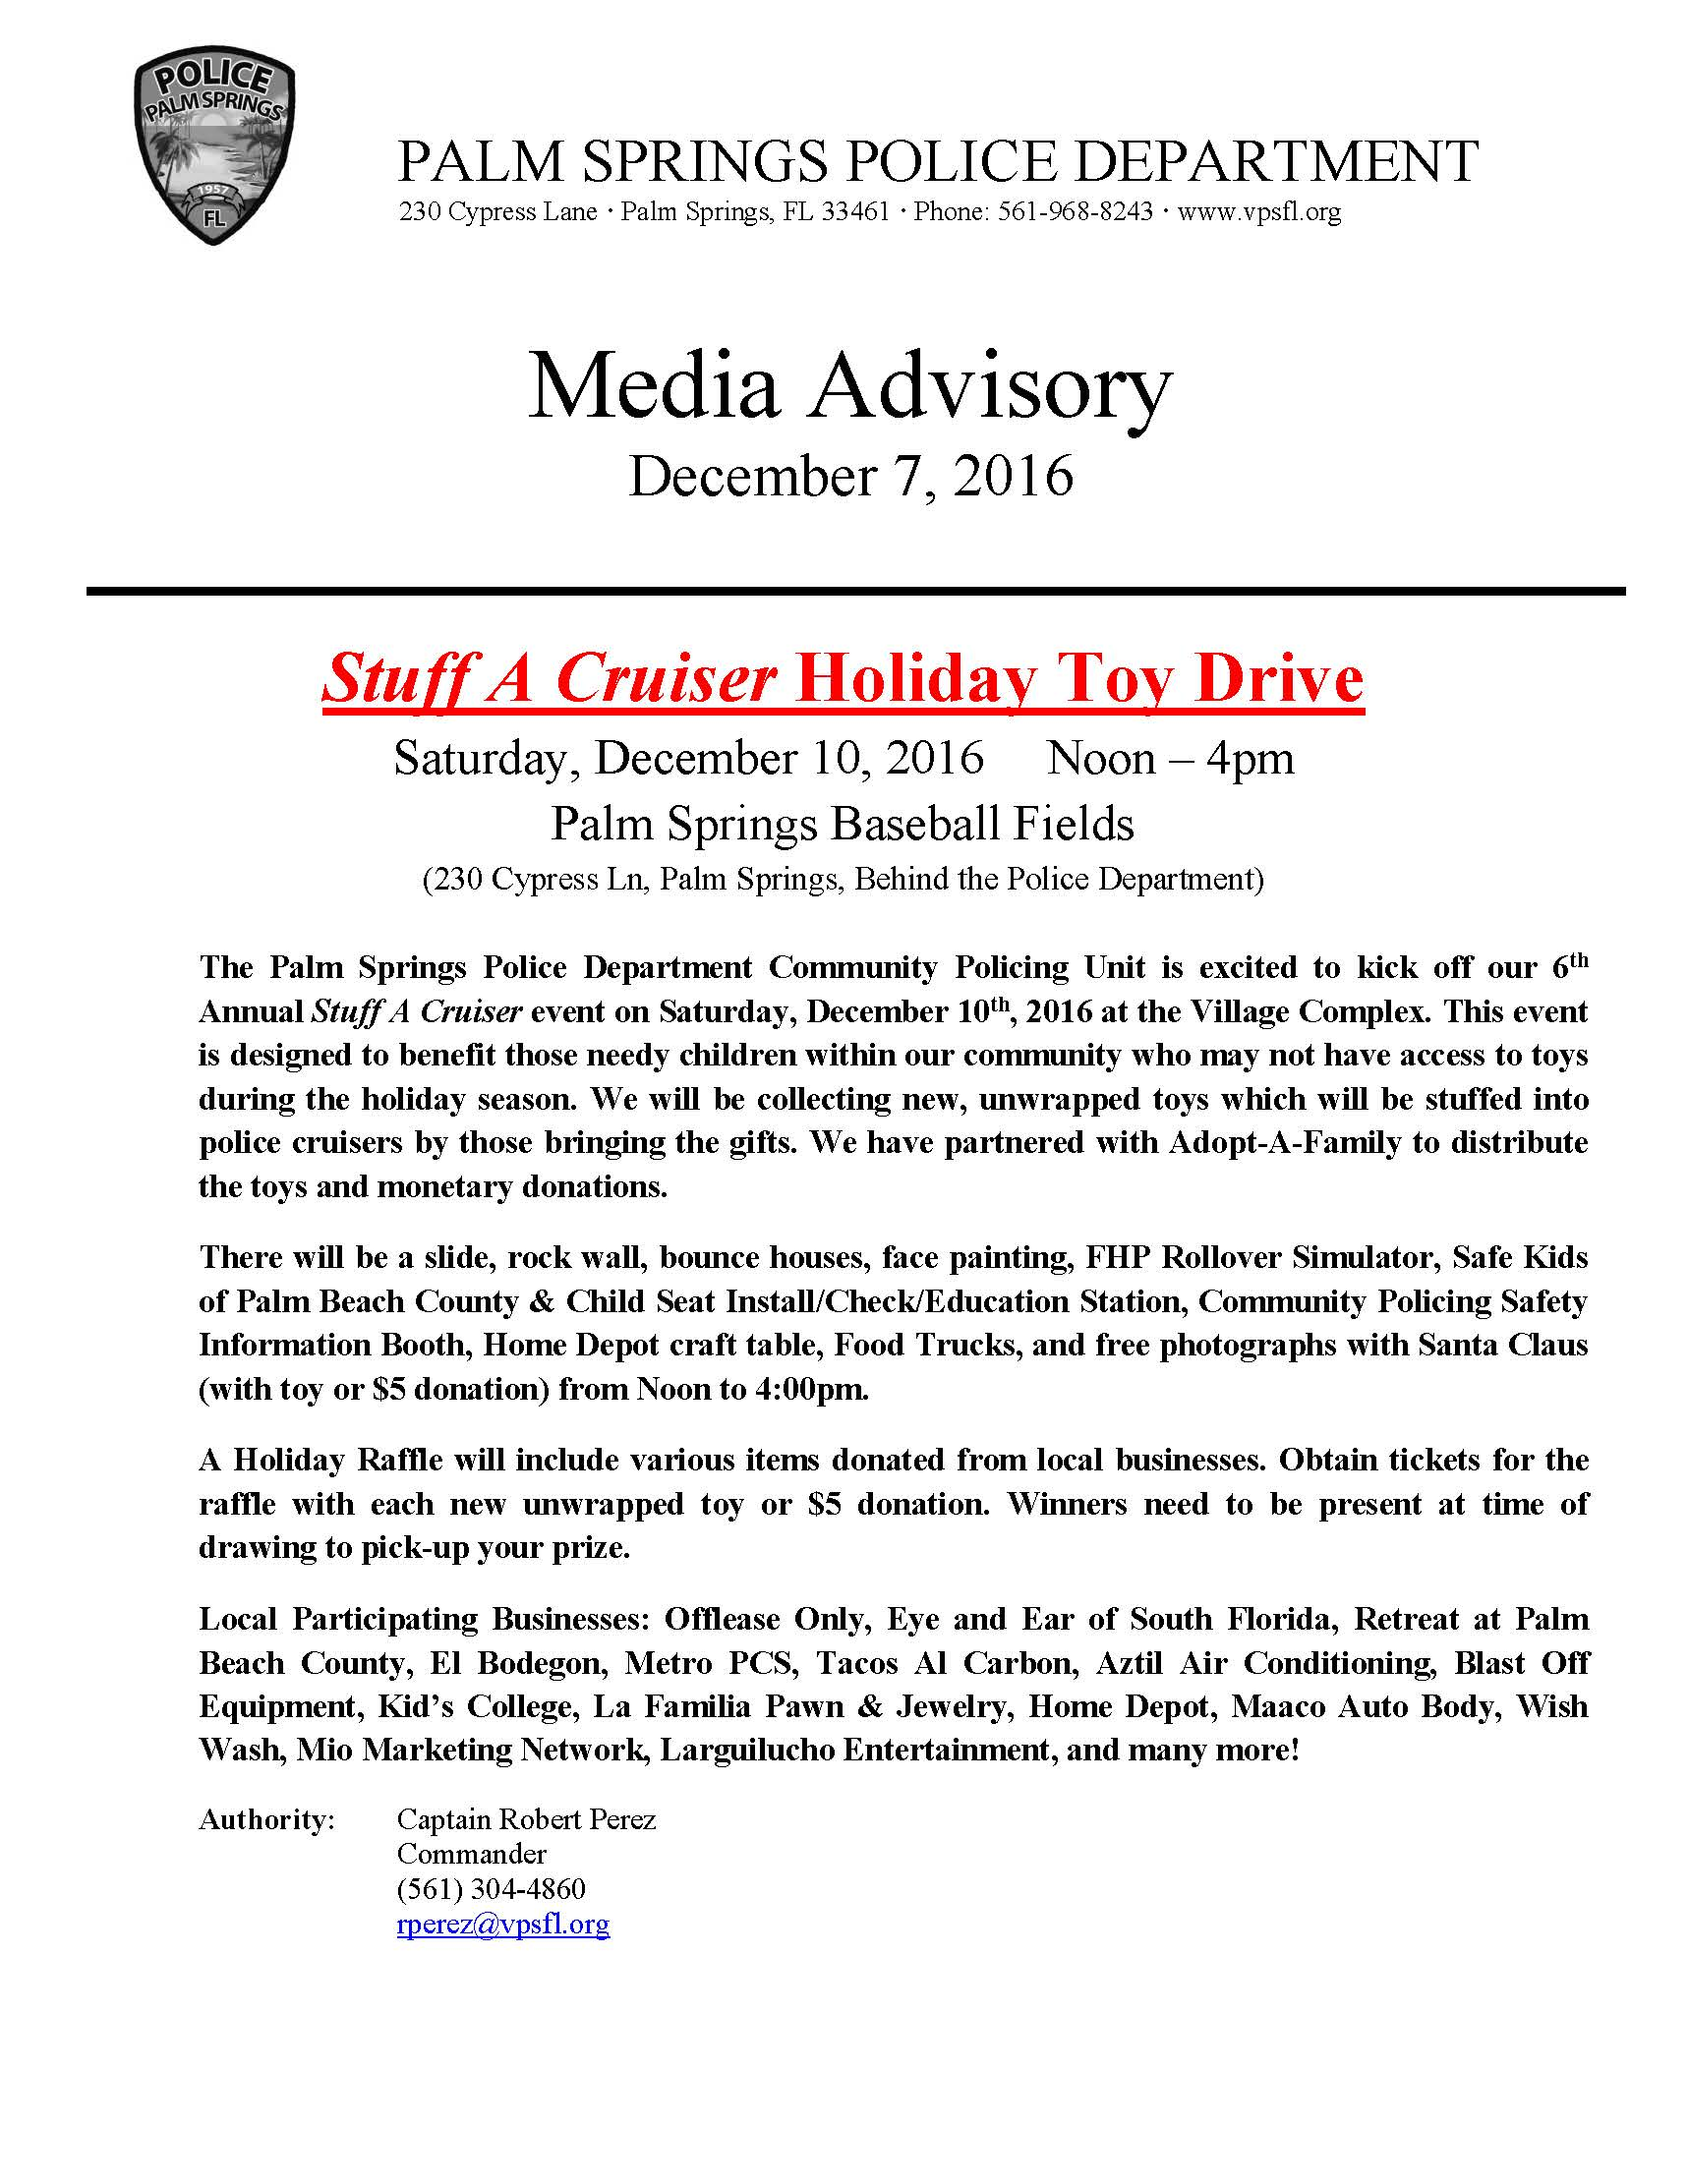 Stuff a Cruiser Media Advisory December 7 2016_Page_1.jpg